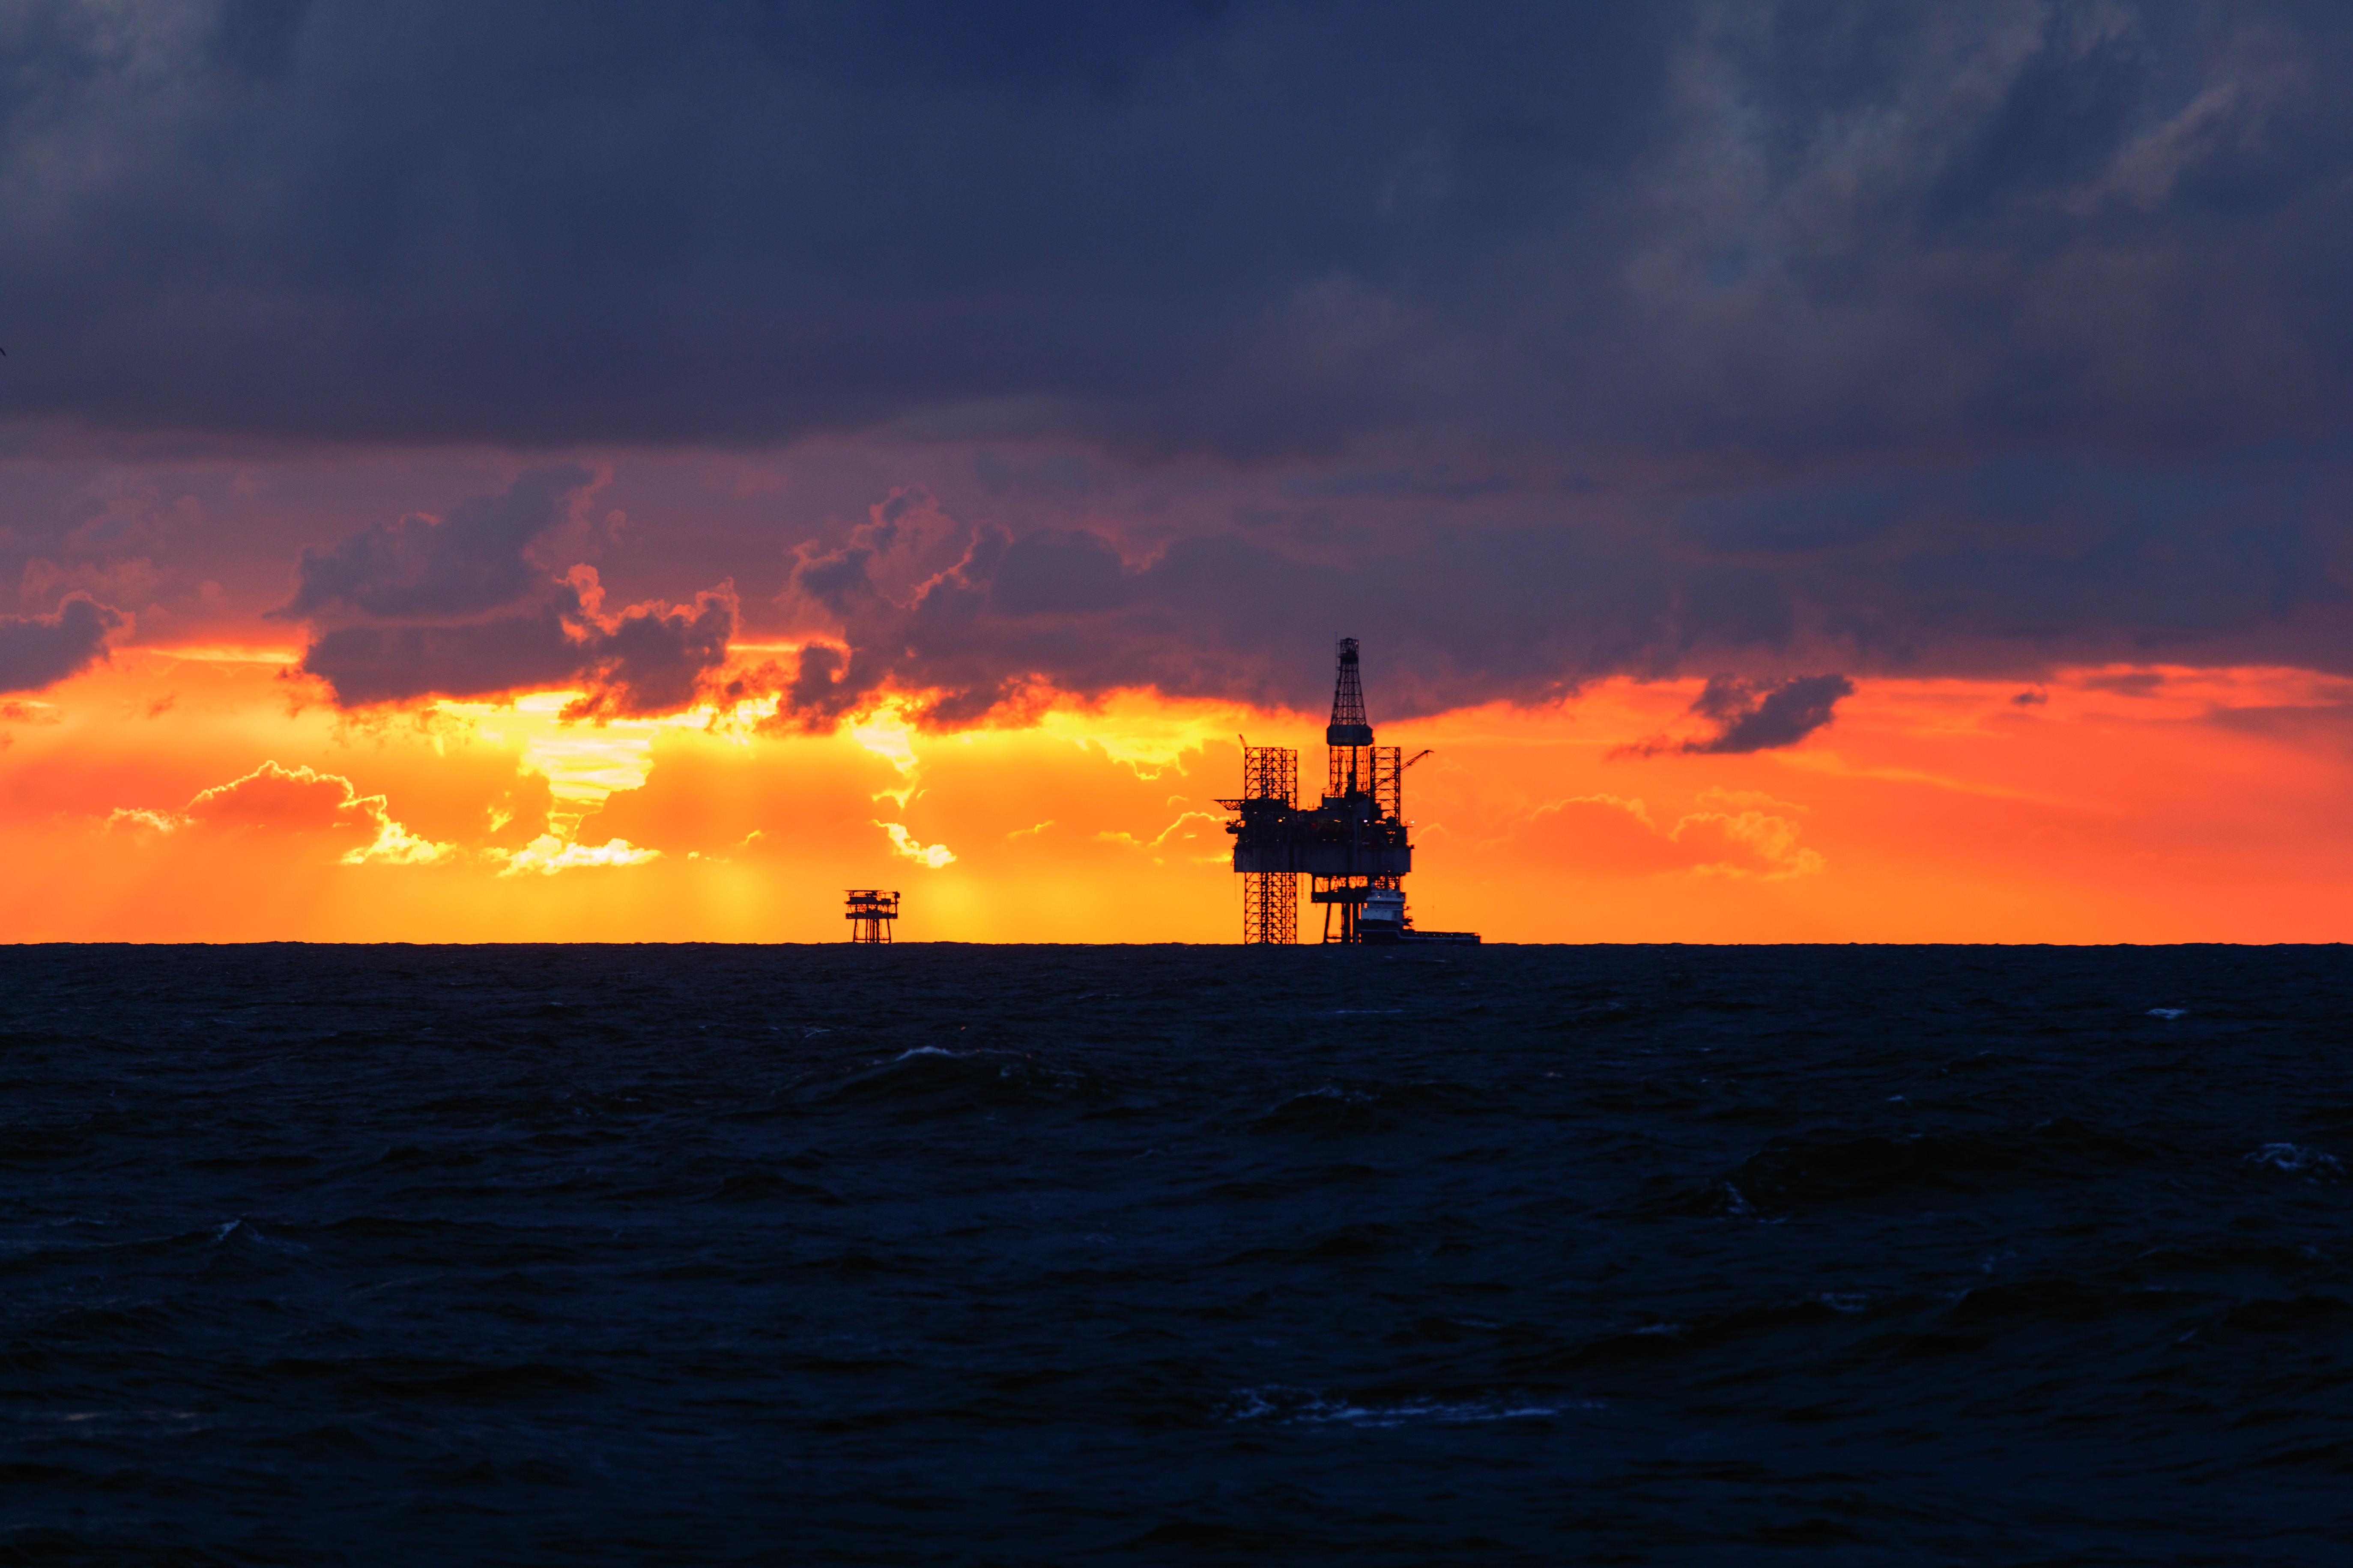 oilrig_with_a_sunset